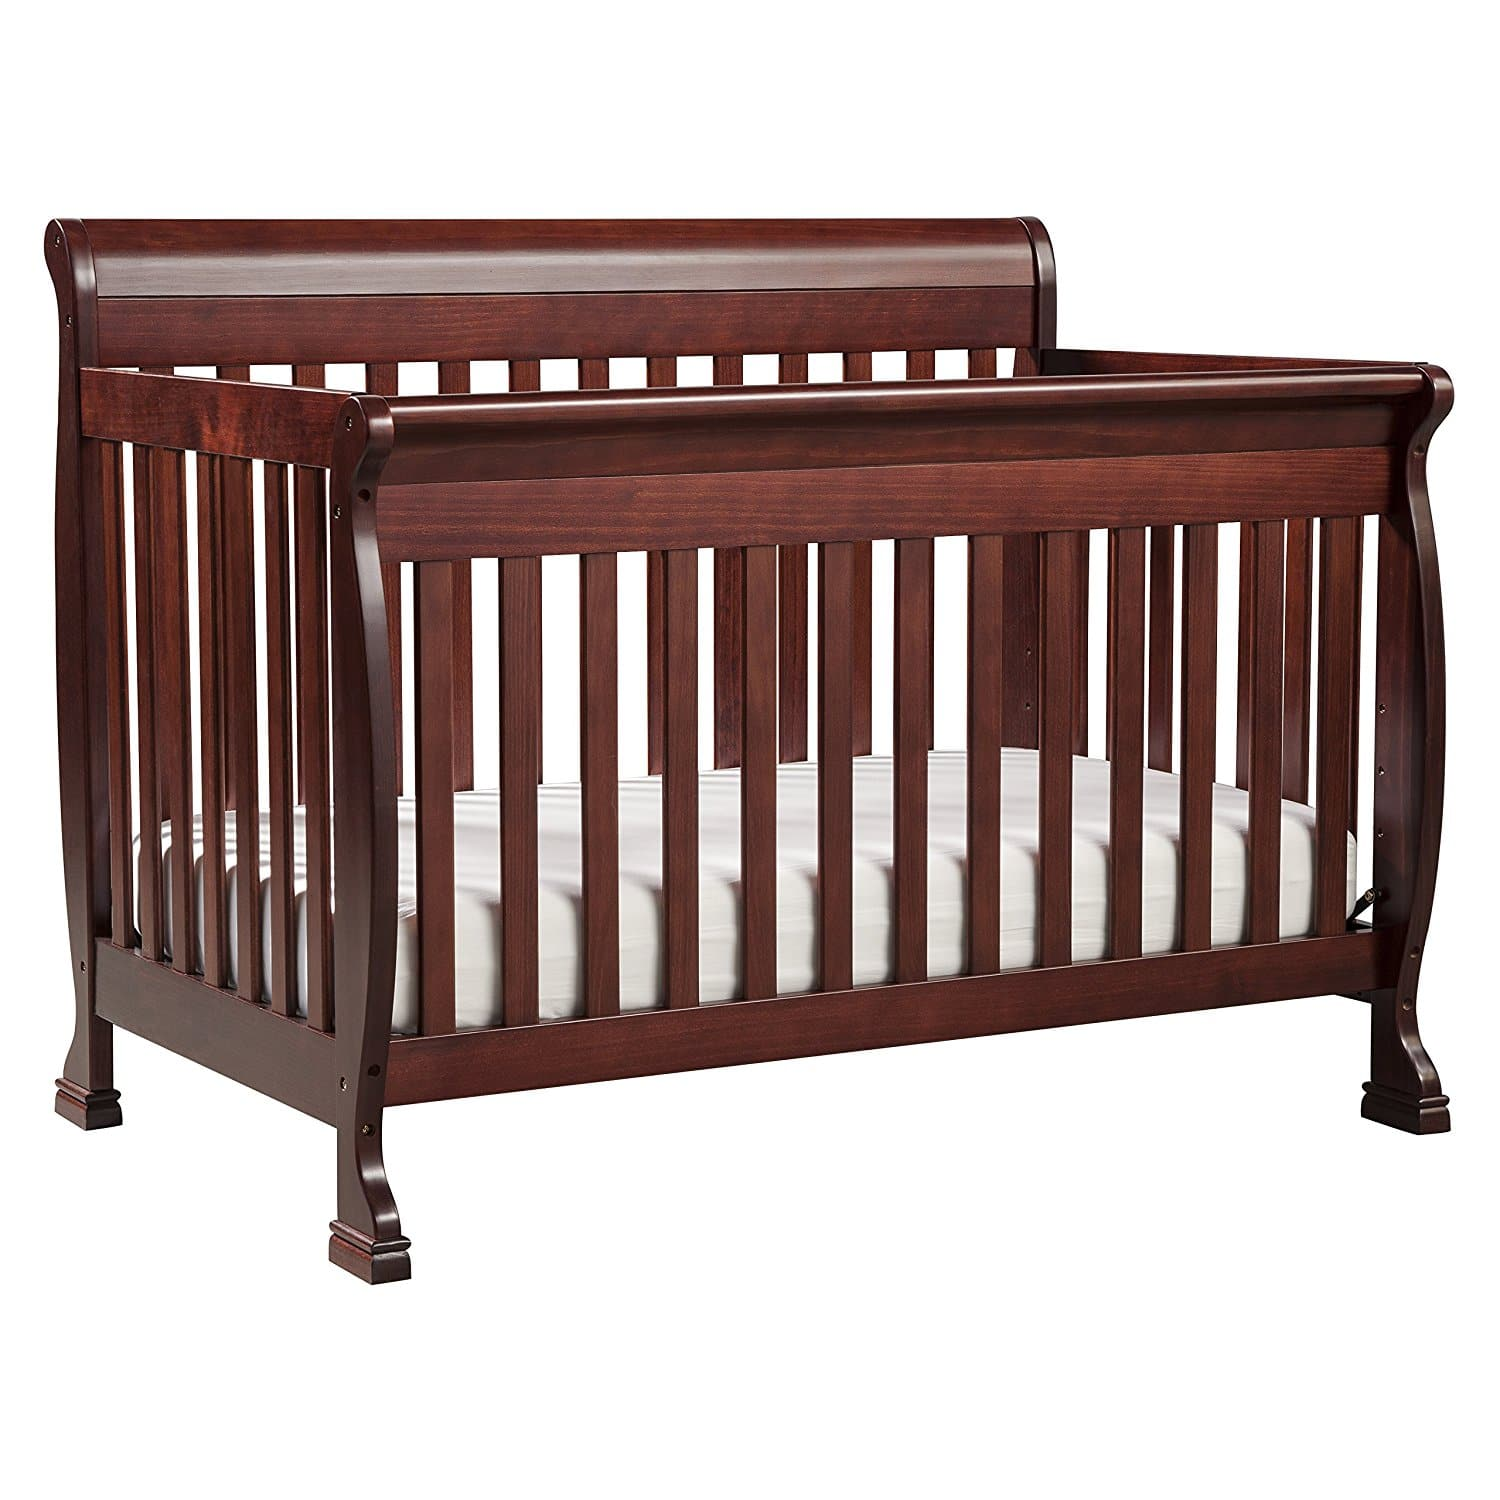 Review: DaVinci Kalani Convertible Crib with Toddler Rail